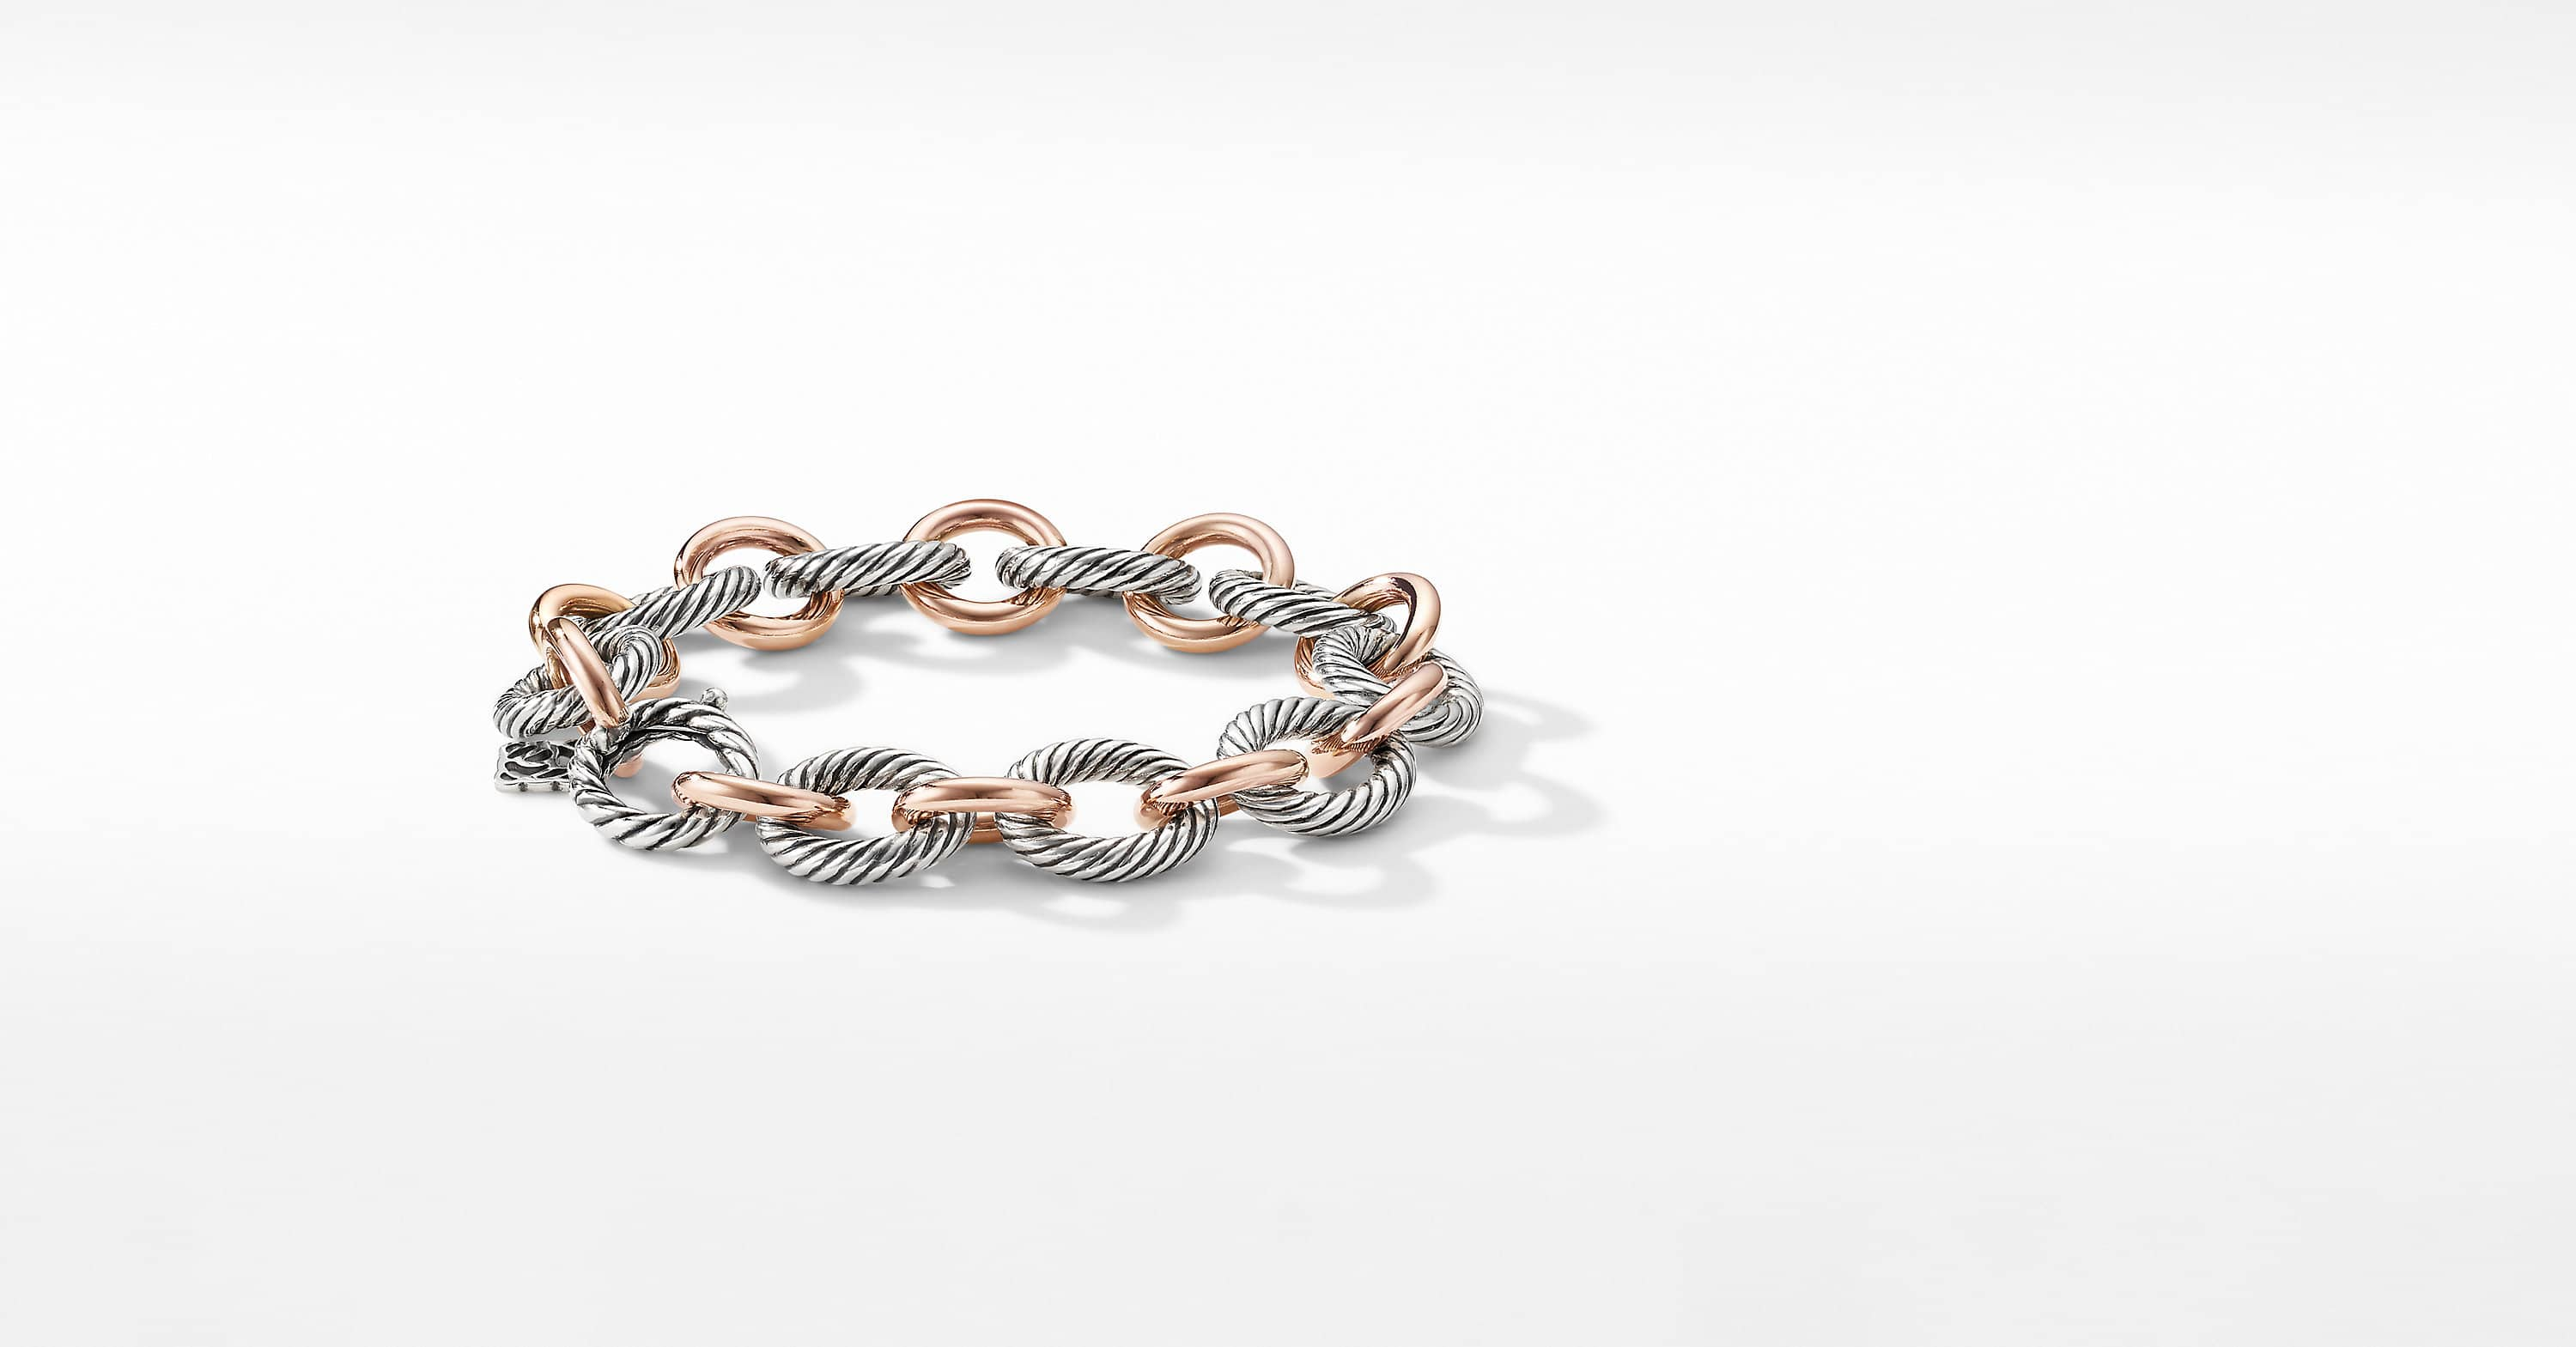 Large Oval Link Bracelet with 18K Rose Gold